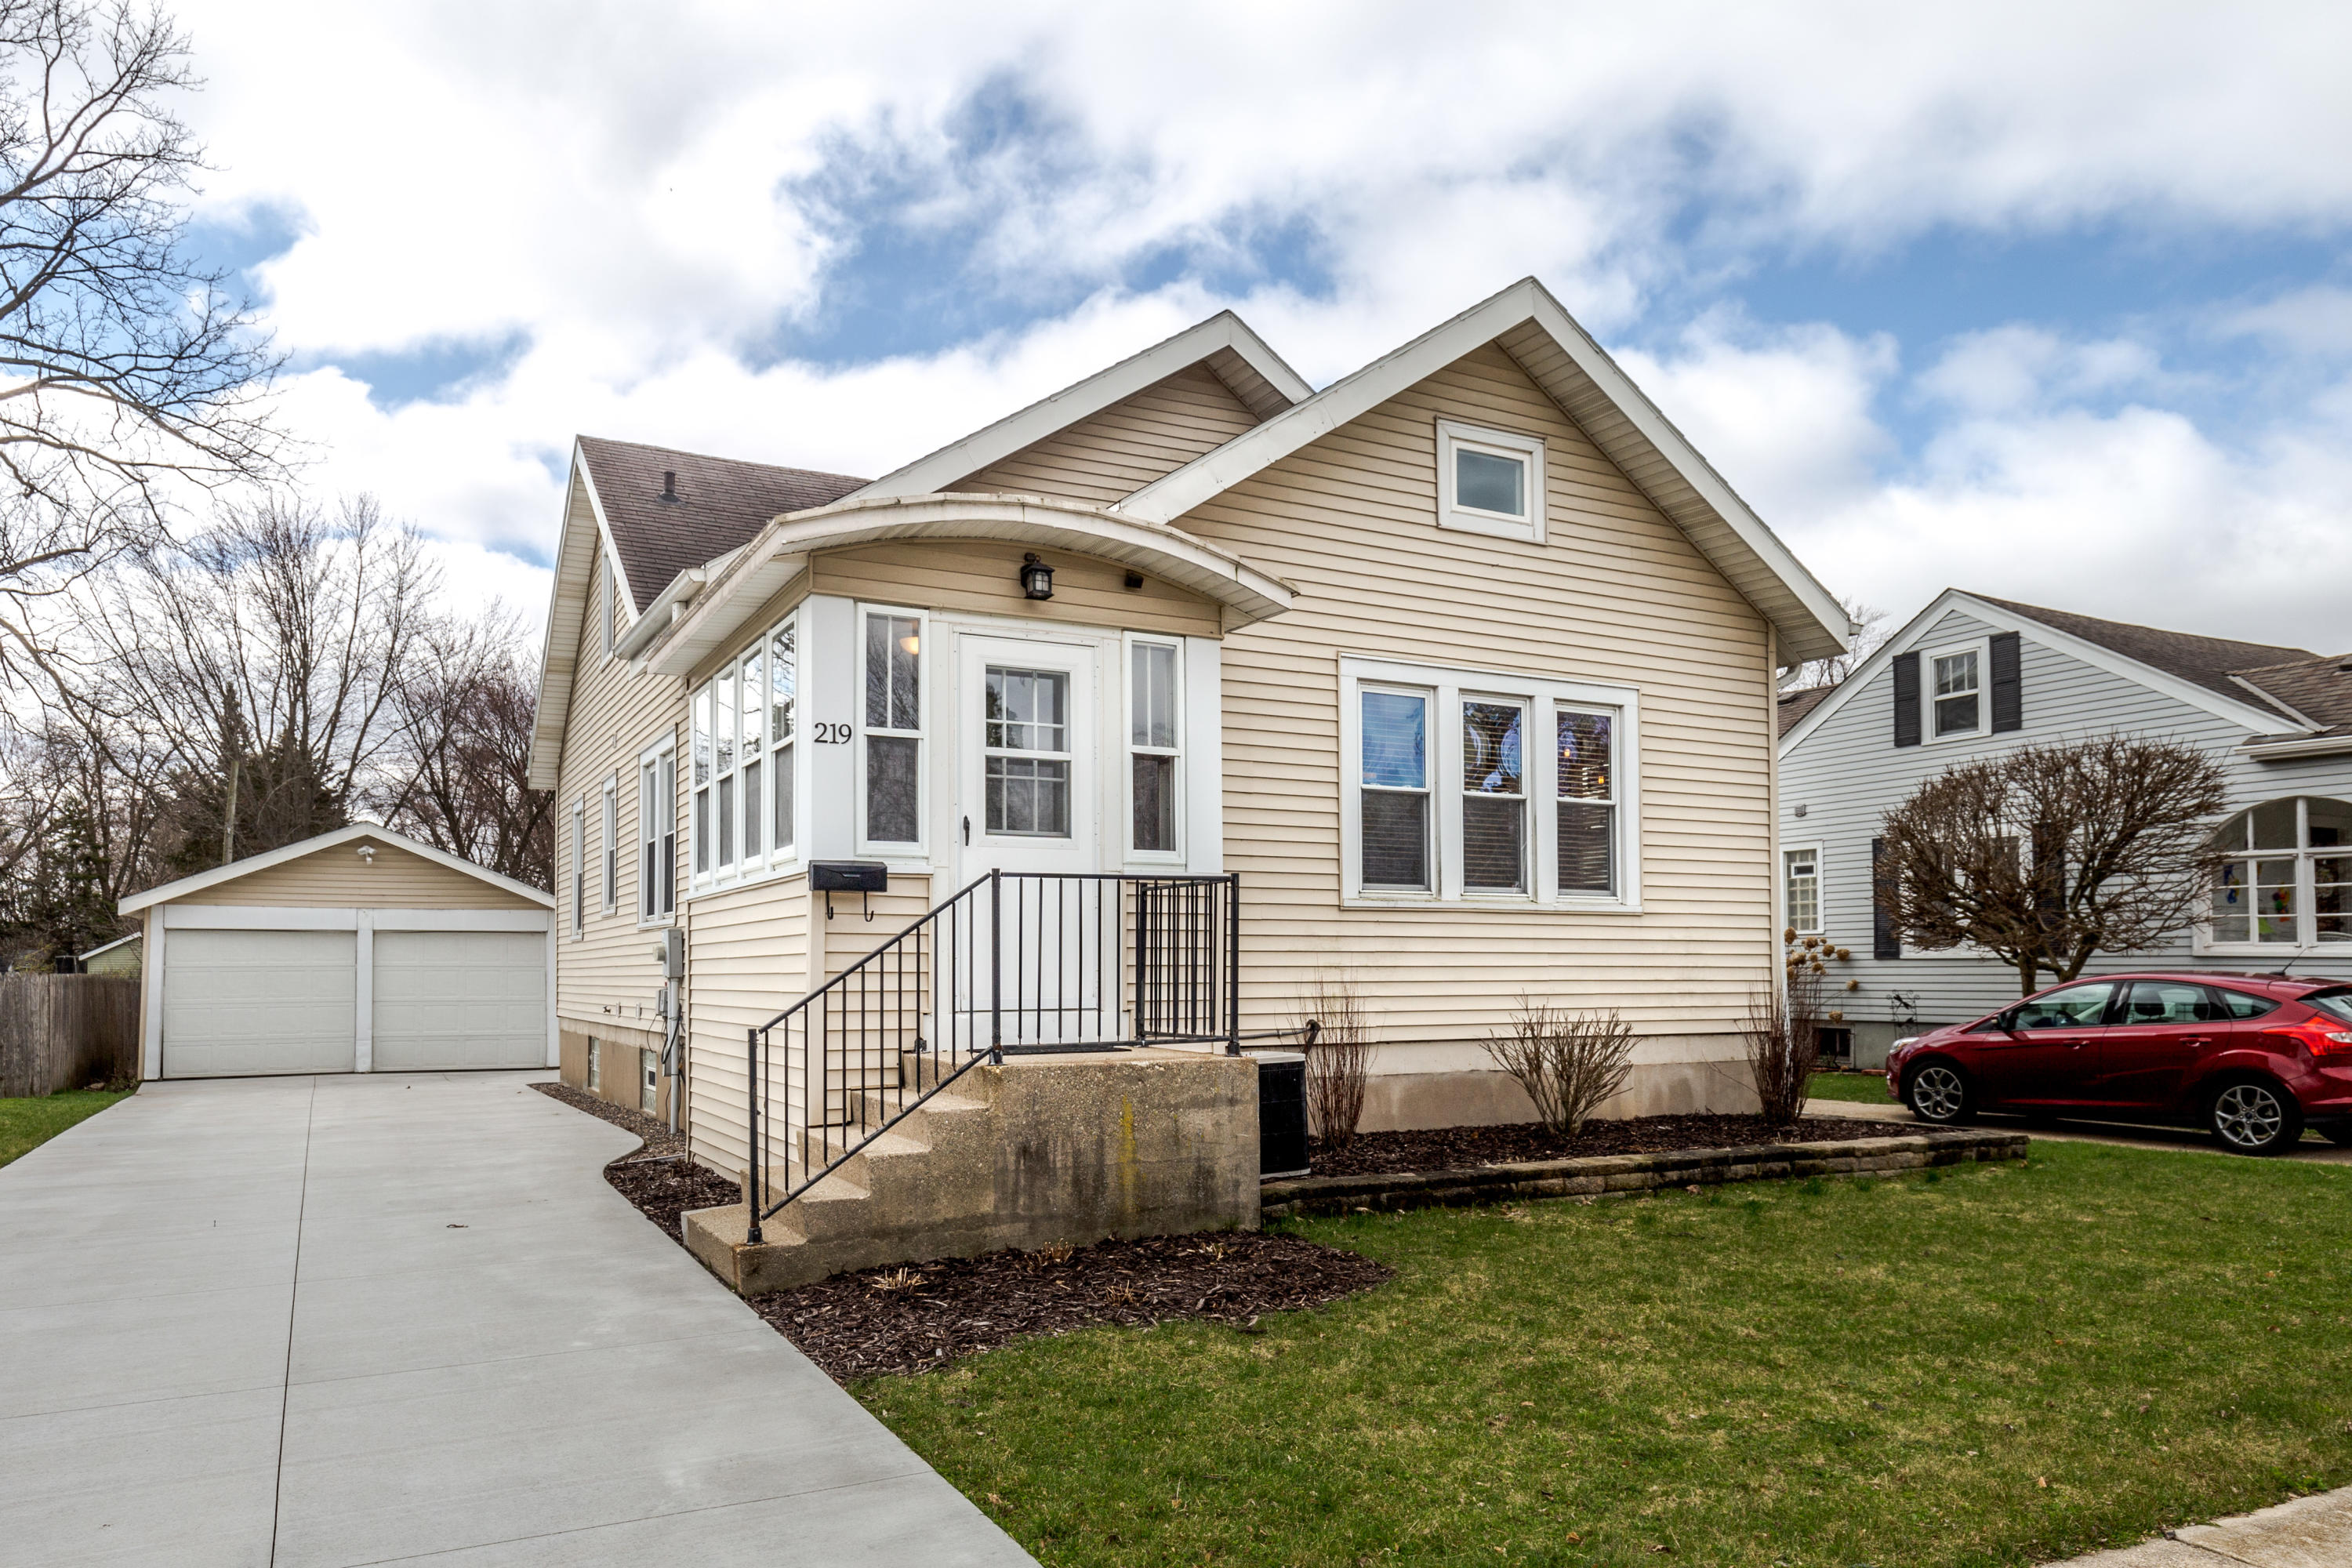 219 3rd St, Oconomowoc, Wisconsin 53066, 4 Bedrooms Bedrooms, 8 Rooms Rooms,2 BathroomsBathrooms,Single-Family,For Sale,3rd St,1686862